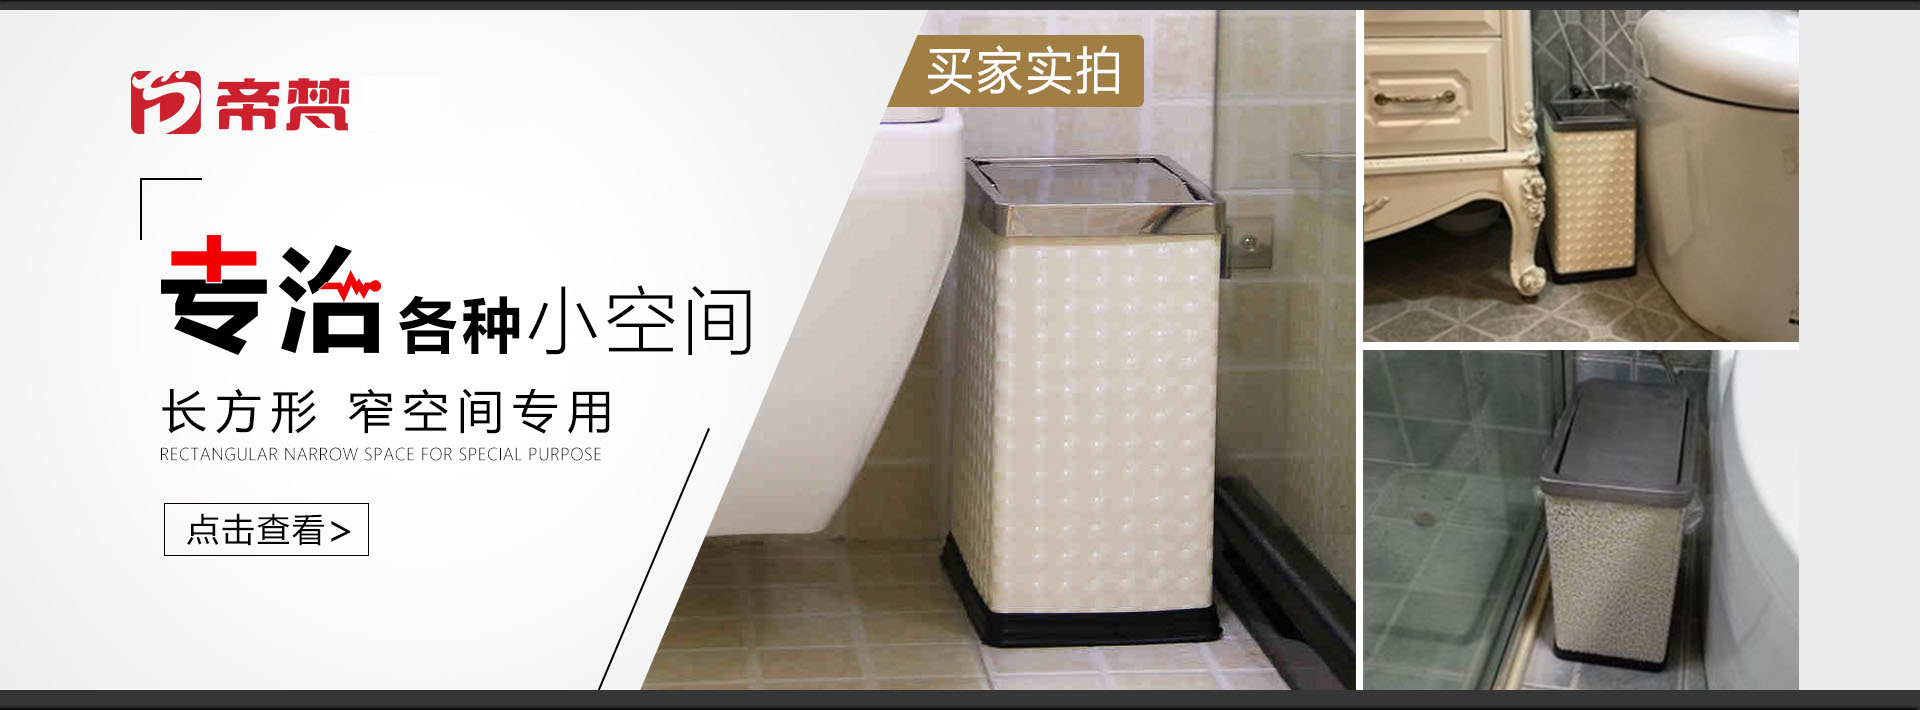 metal kitchen island country table sets 帝梵旗舰店 - 京东